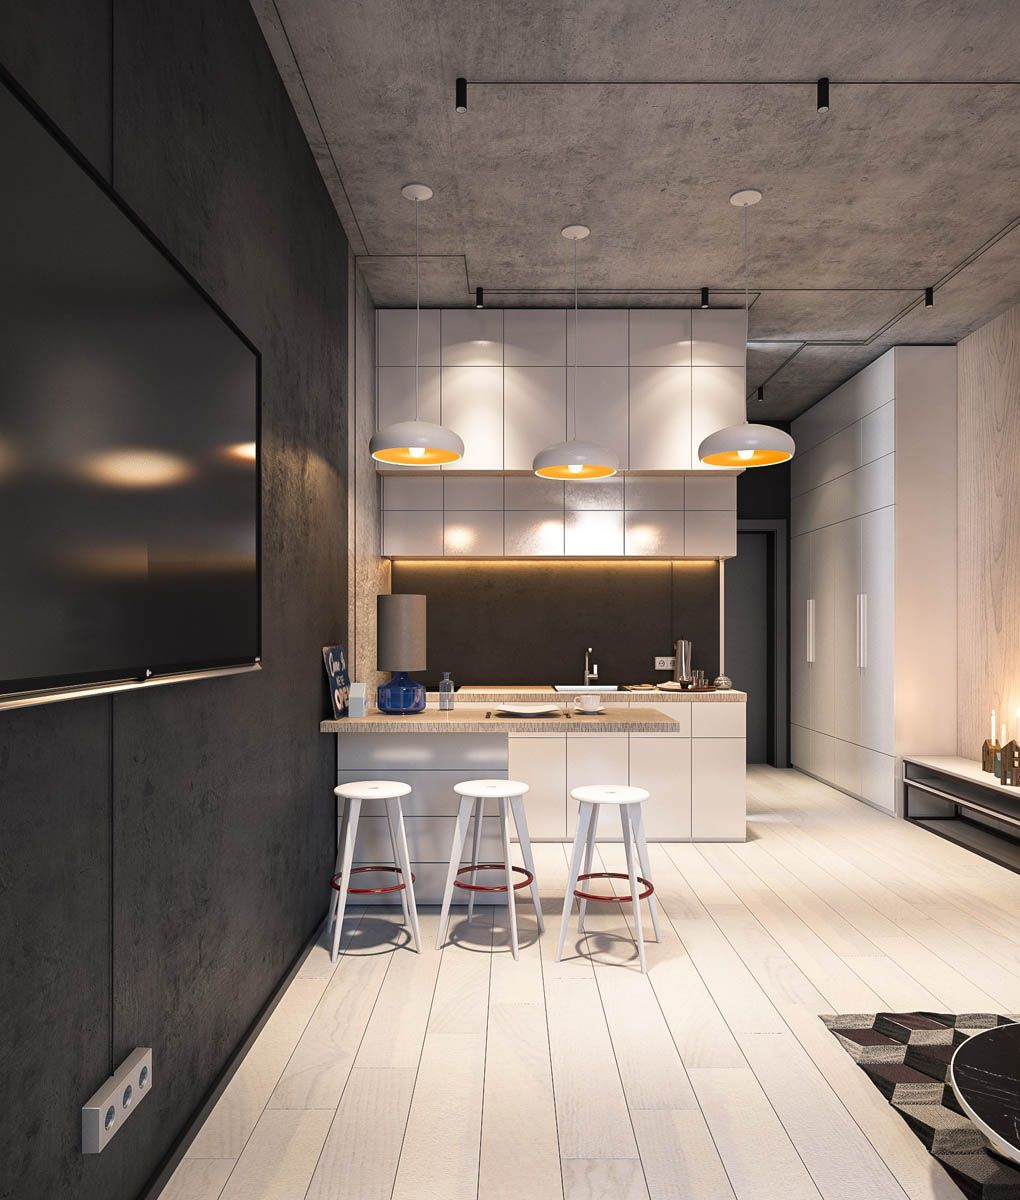 3 Small Apartments That Make The Best Of The Space They